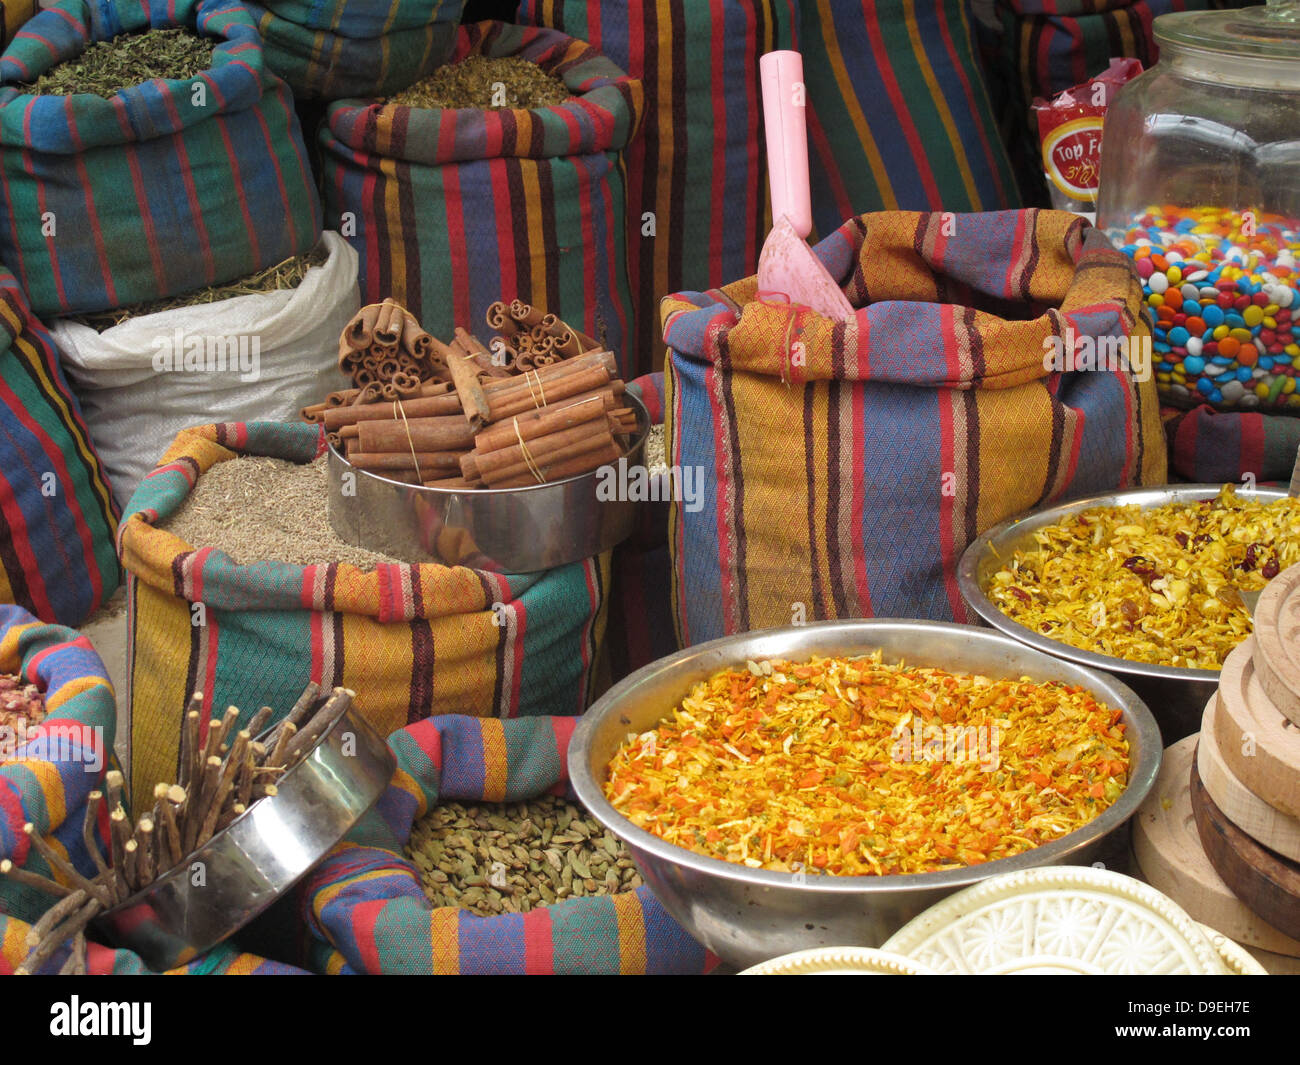 acco acre israel shuk market spices stripes bags - Stock Image